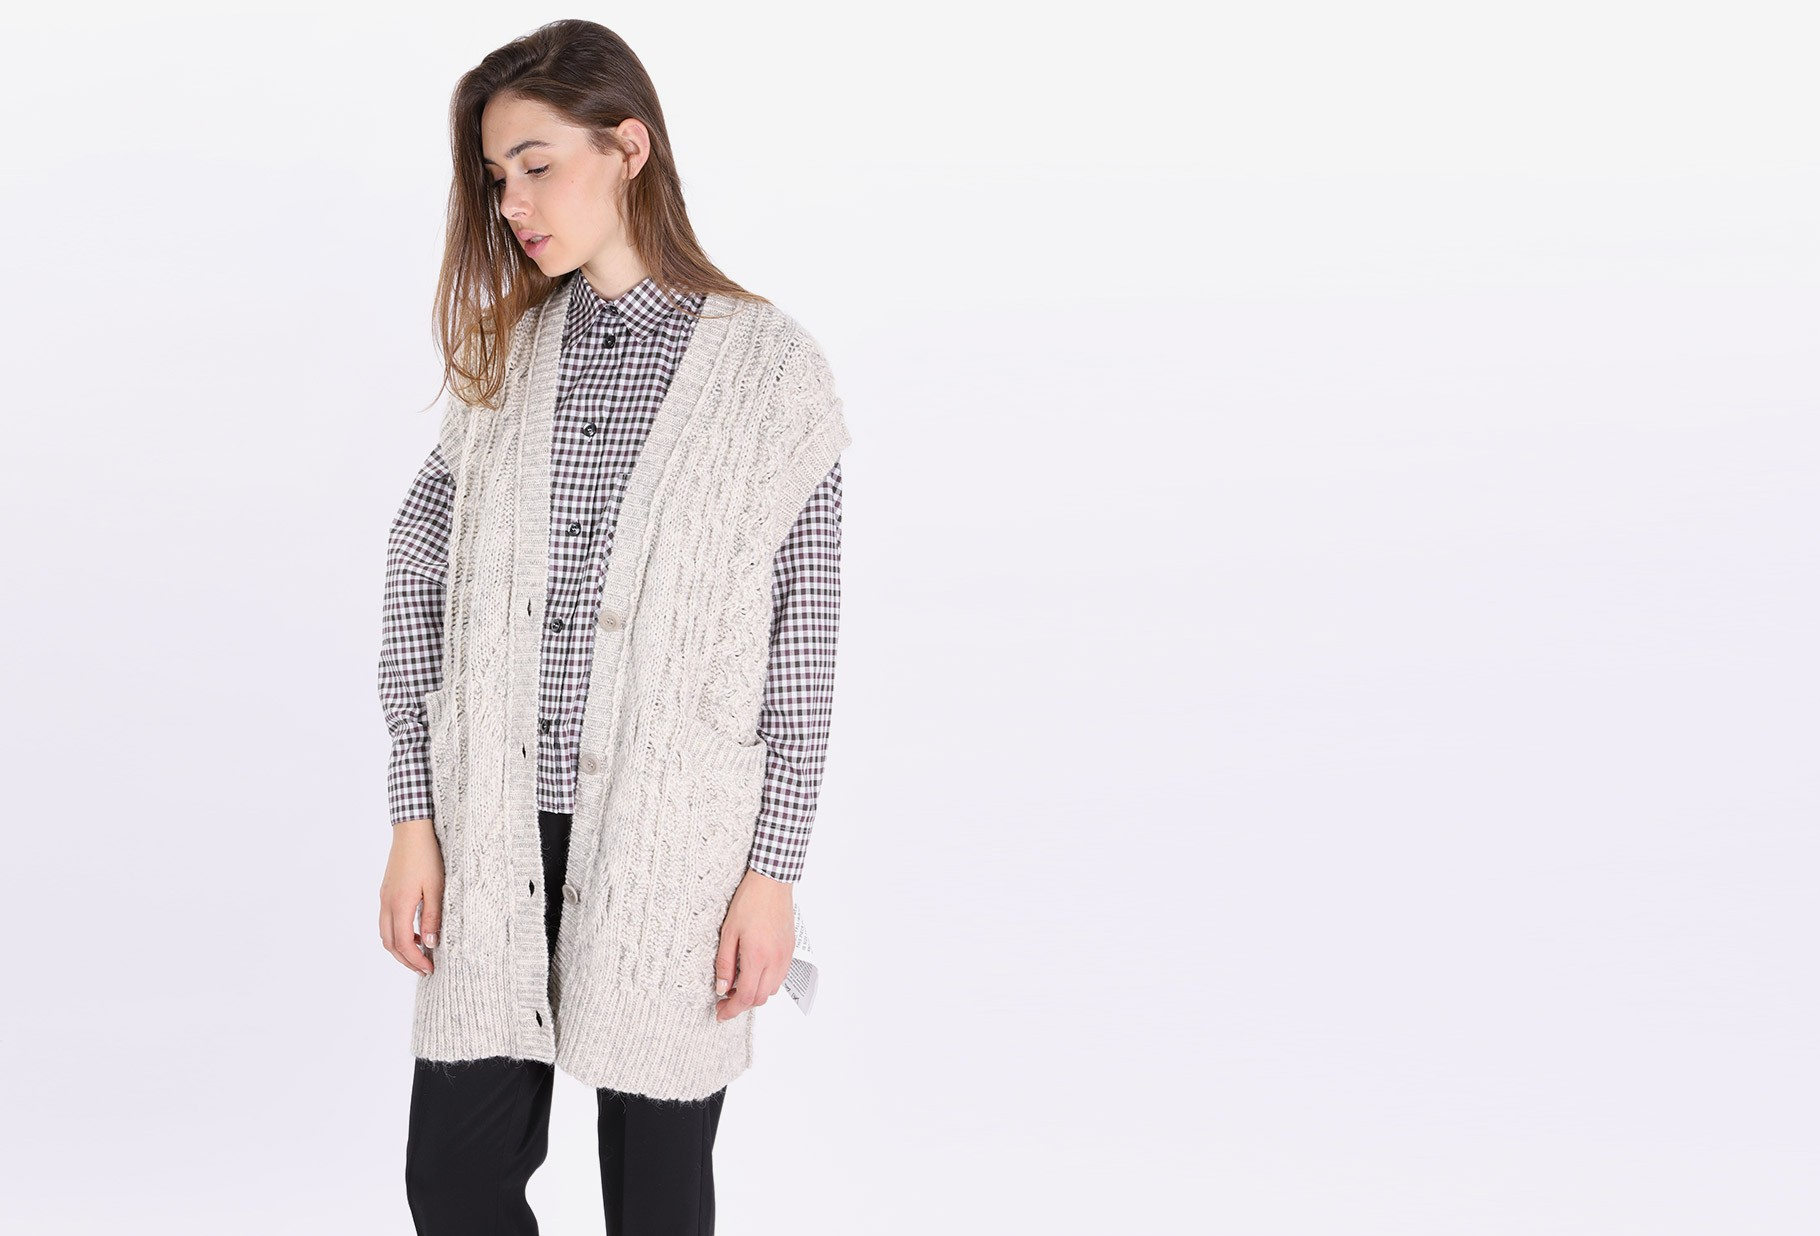 MM6 MAISON MARGIELA FOR WOMAN / Knitted dress Heather grey